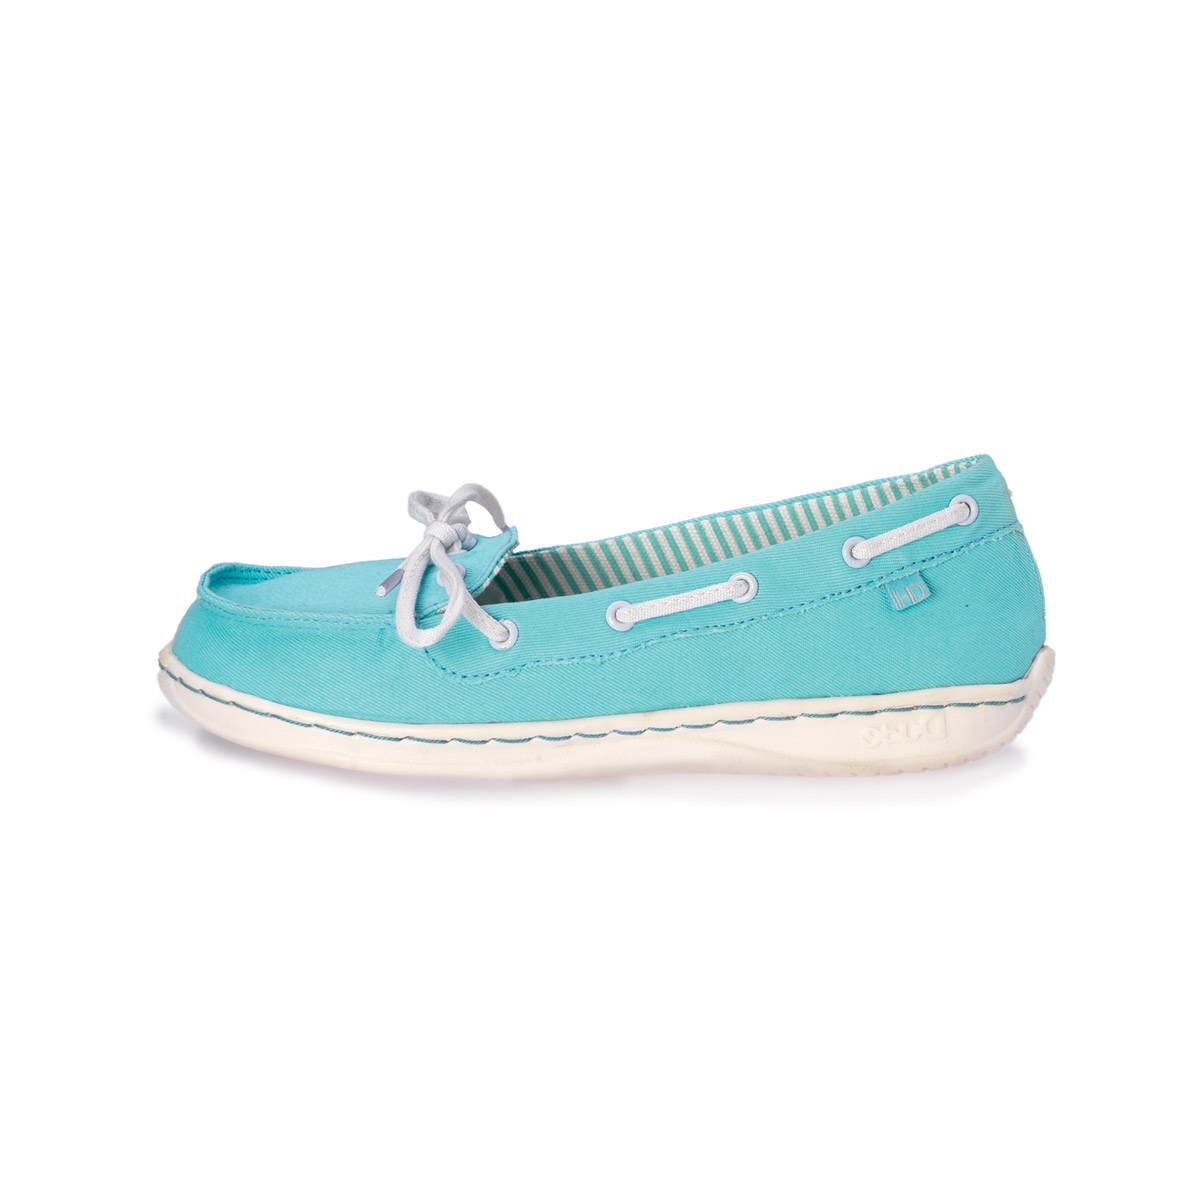 Image of Hey Dude Moka Slip On Cord Canvas Deck Shoe (Women's) - Aqua